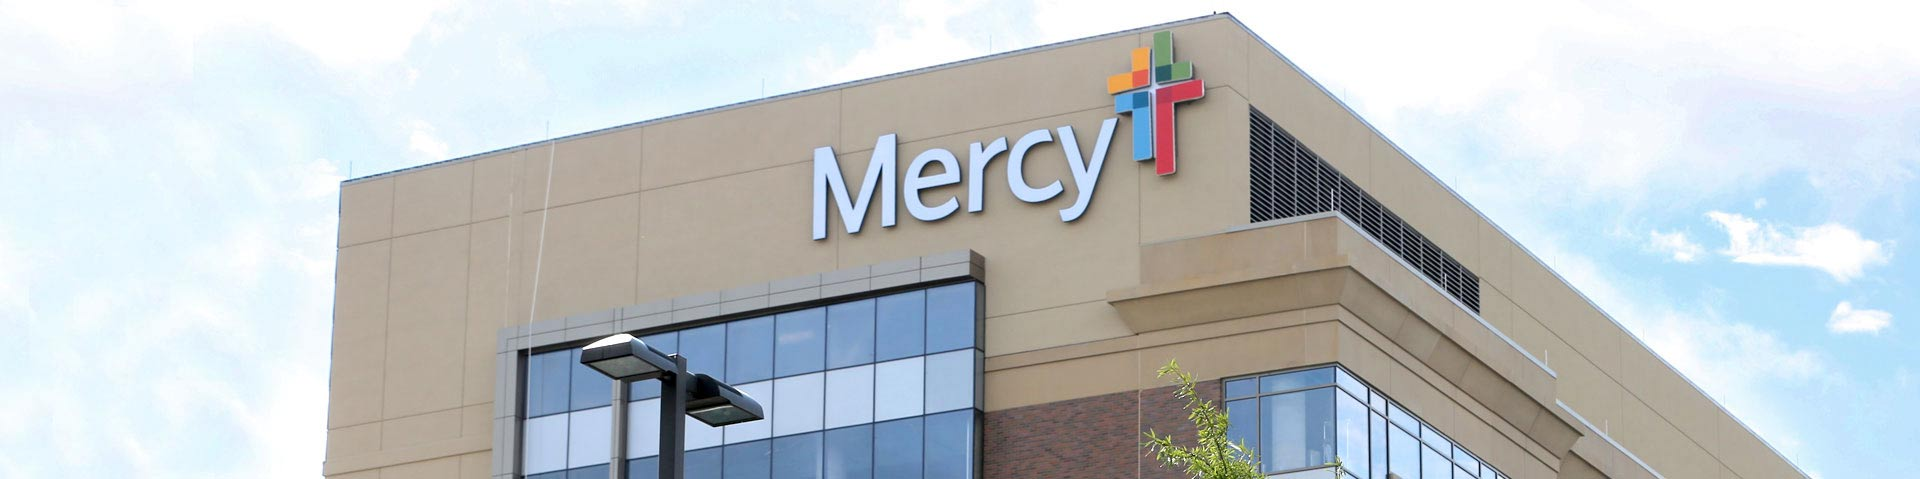 WEB_Hero_Location_Mercy-Hospital-Northwest-Arkansas